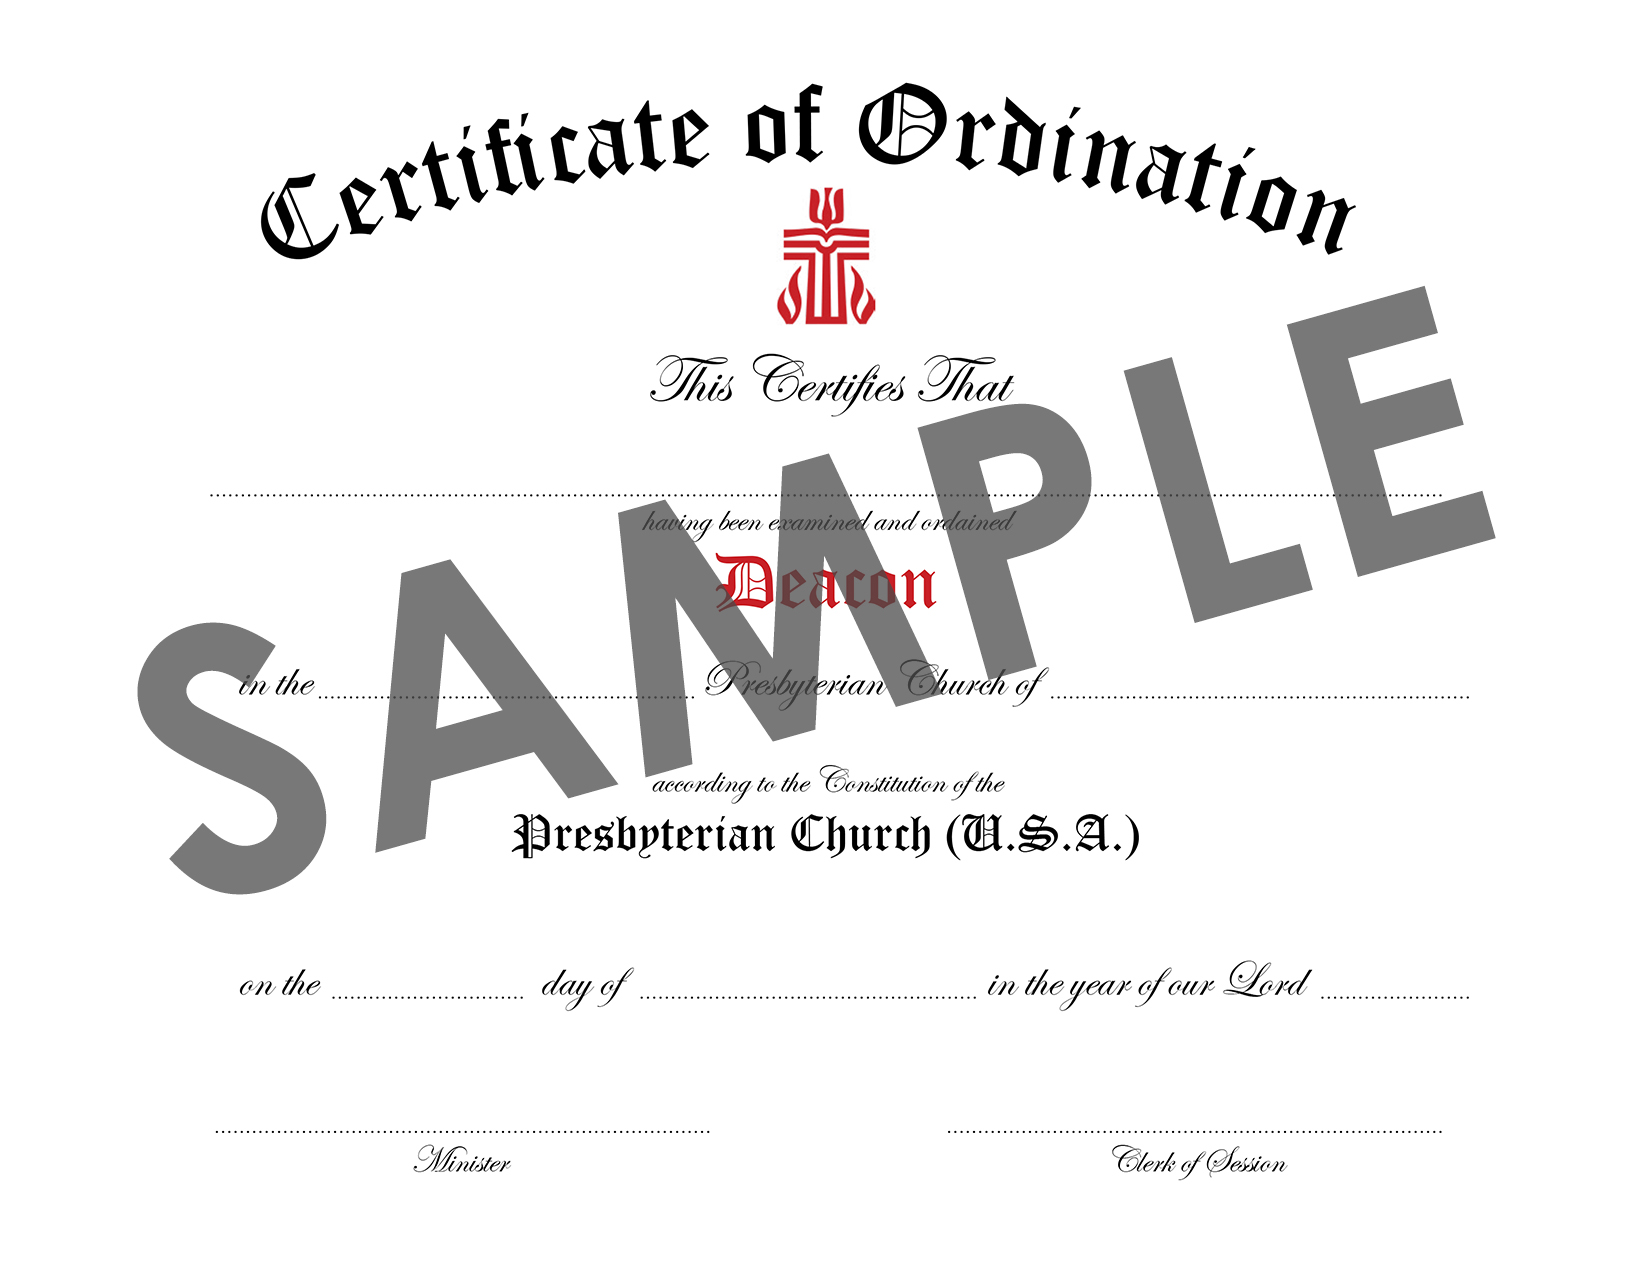 Certificate of Ordination of Deacon